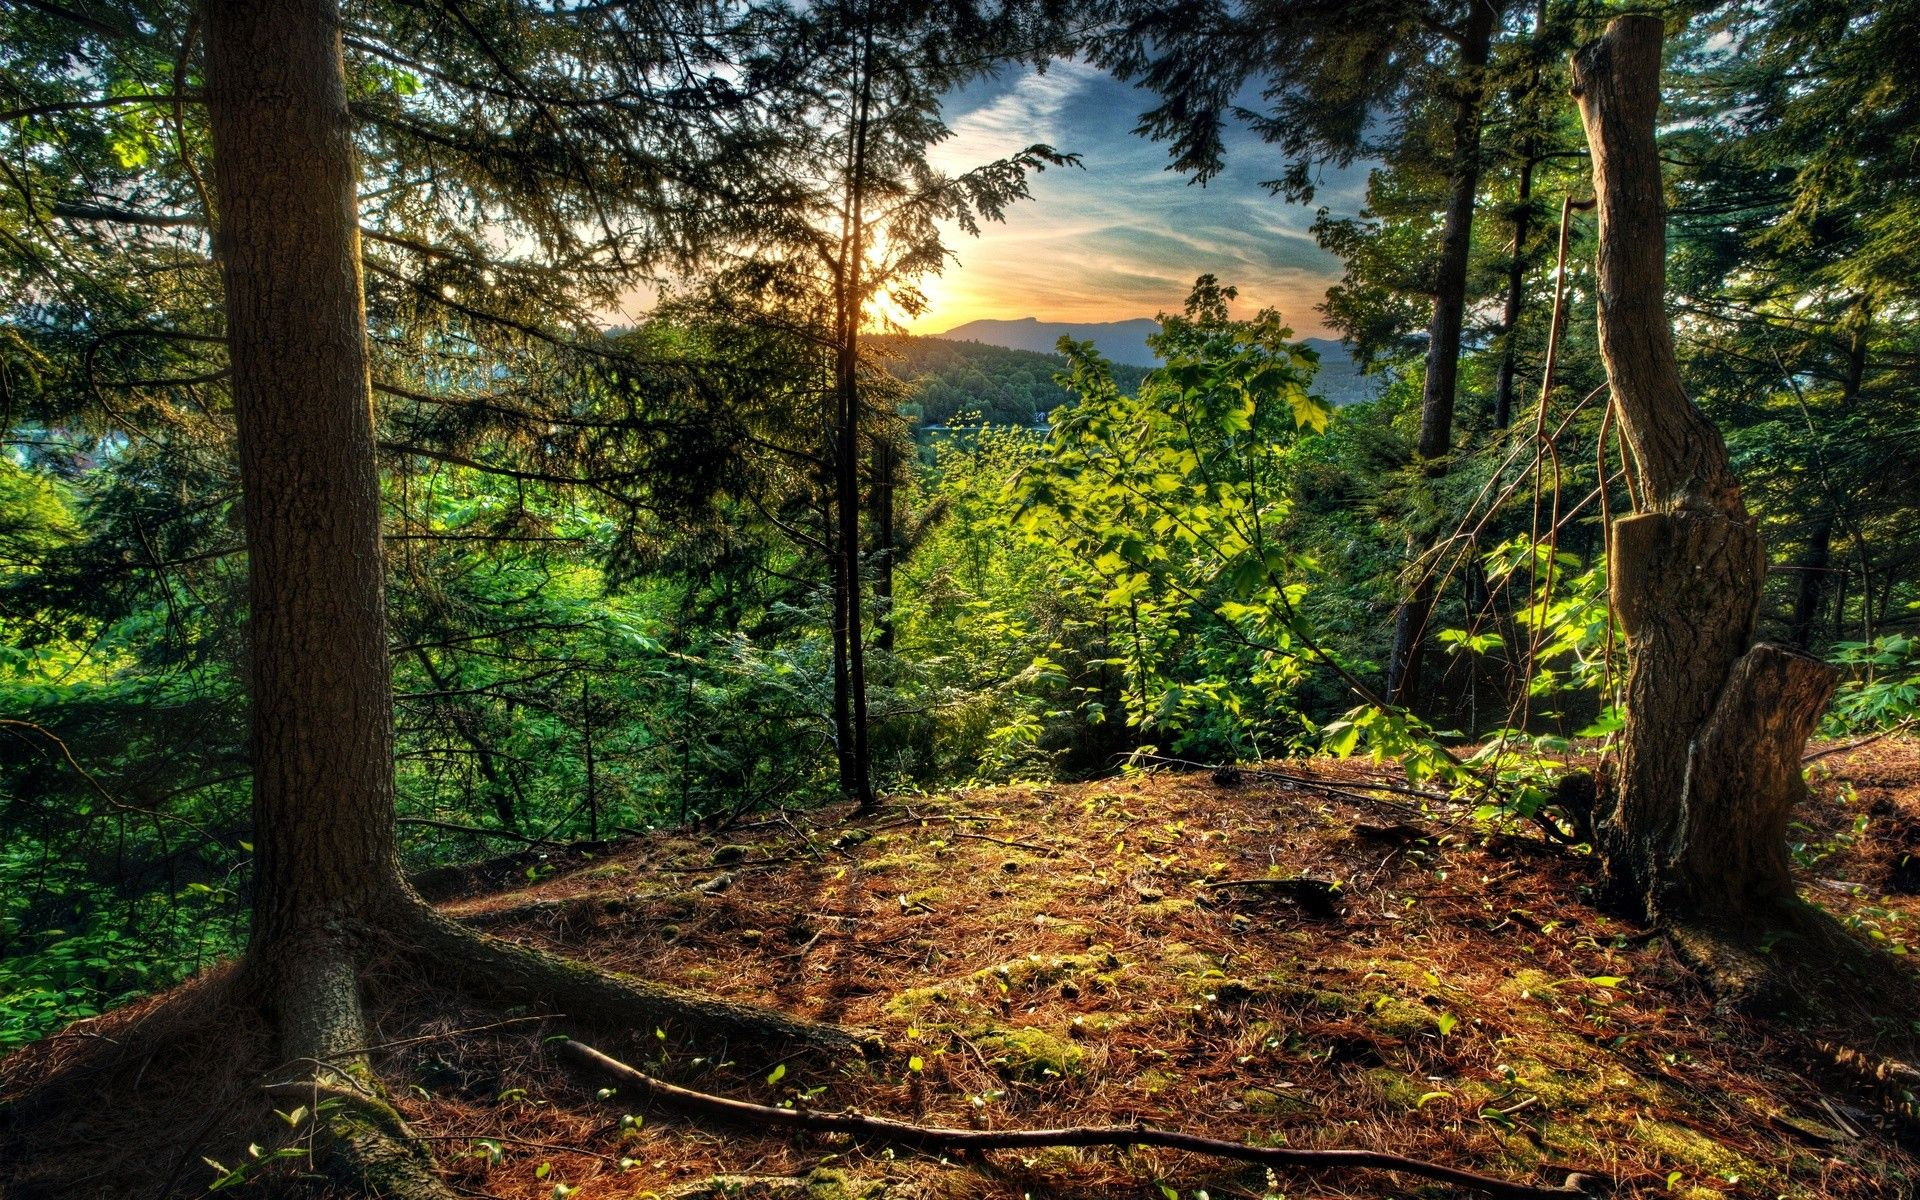 tree green forest sunshines mountain climbing views super hd